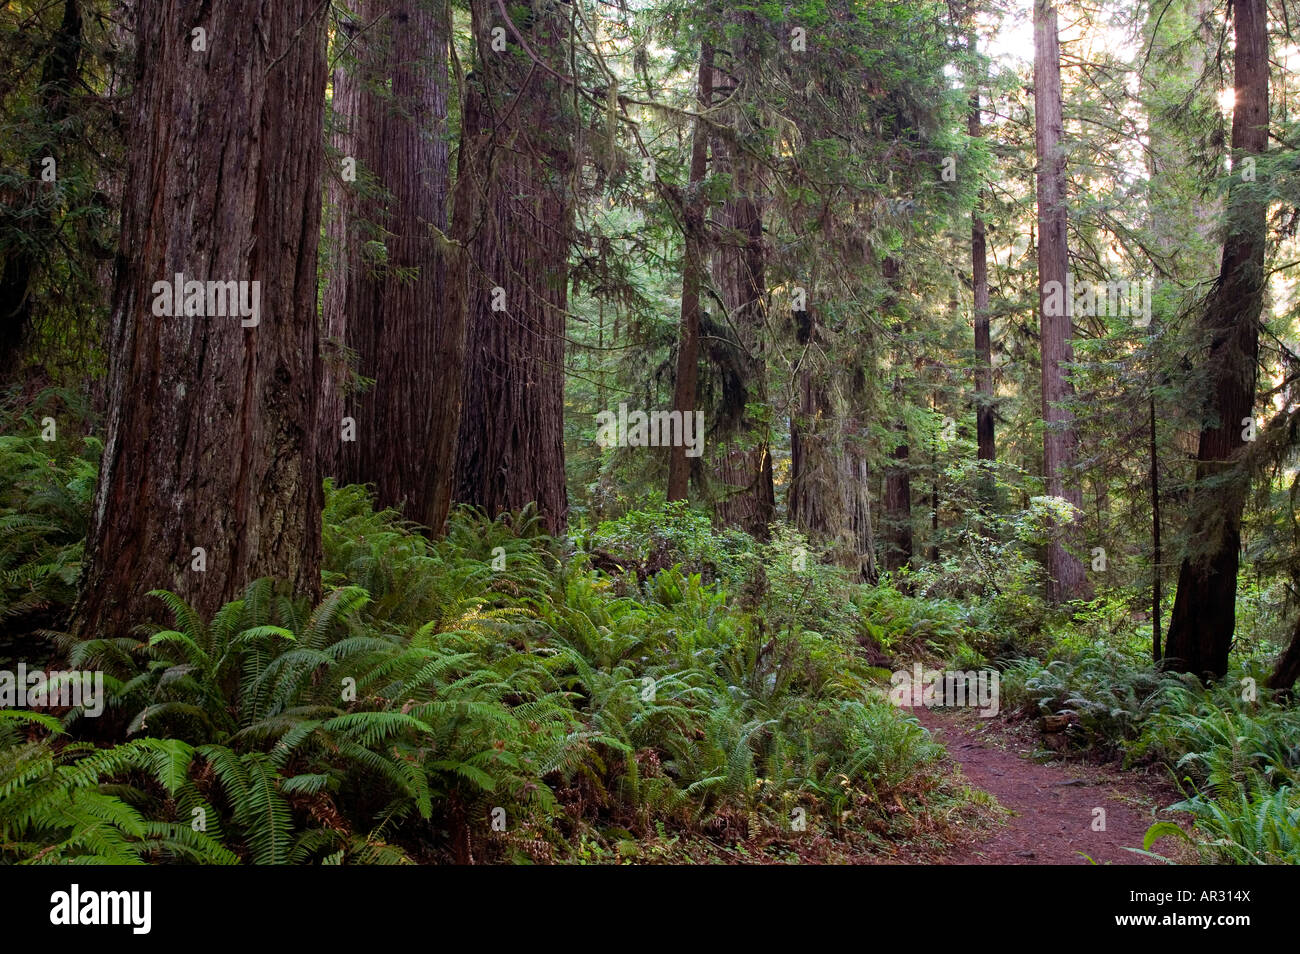 Redwood trees and trail, Prairie CreekRedwoods State Park, California, United States - Stock Image